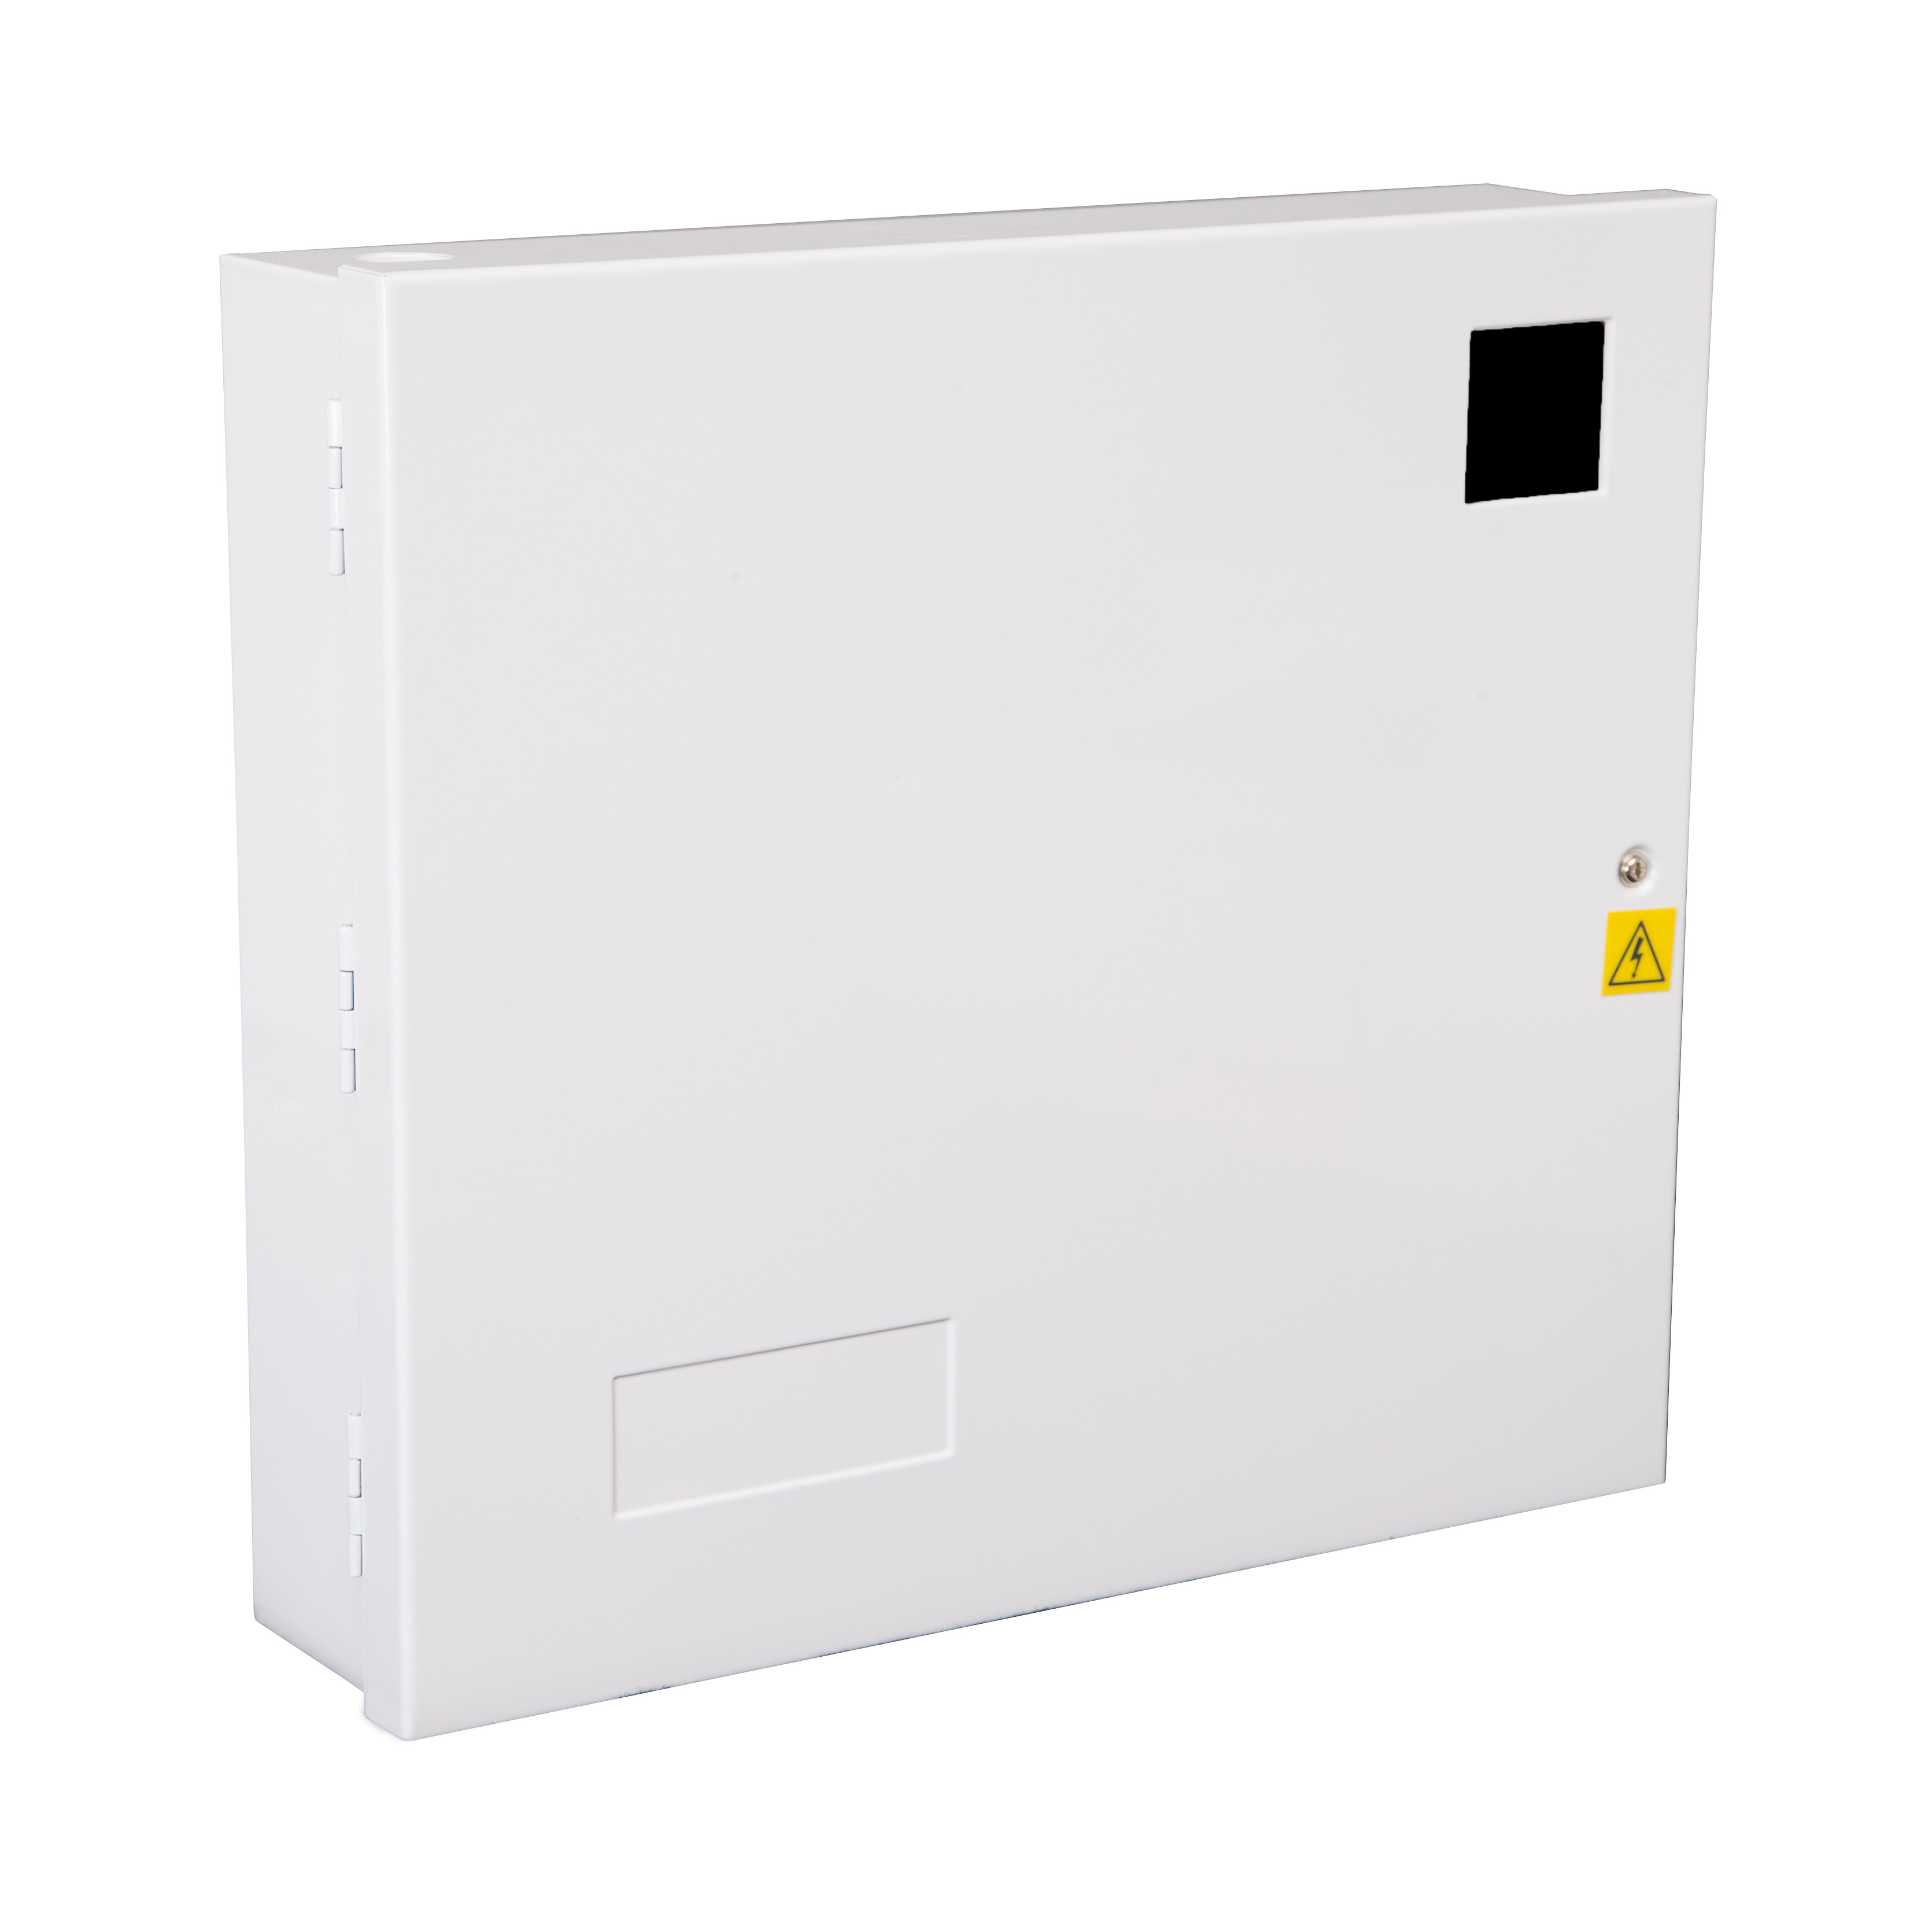 EN50131 - Grade 2 Intruder systems and any other system that require monitoring of the mains and battery.